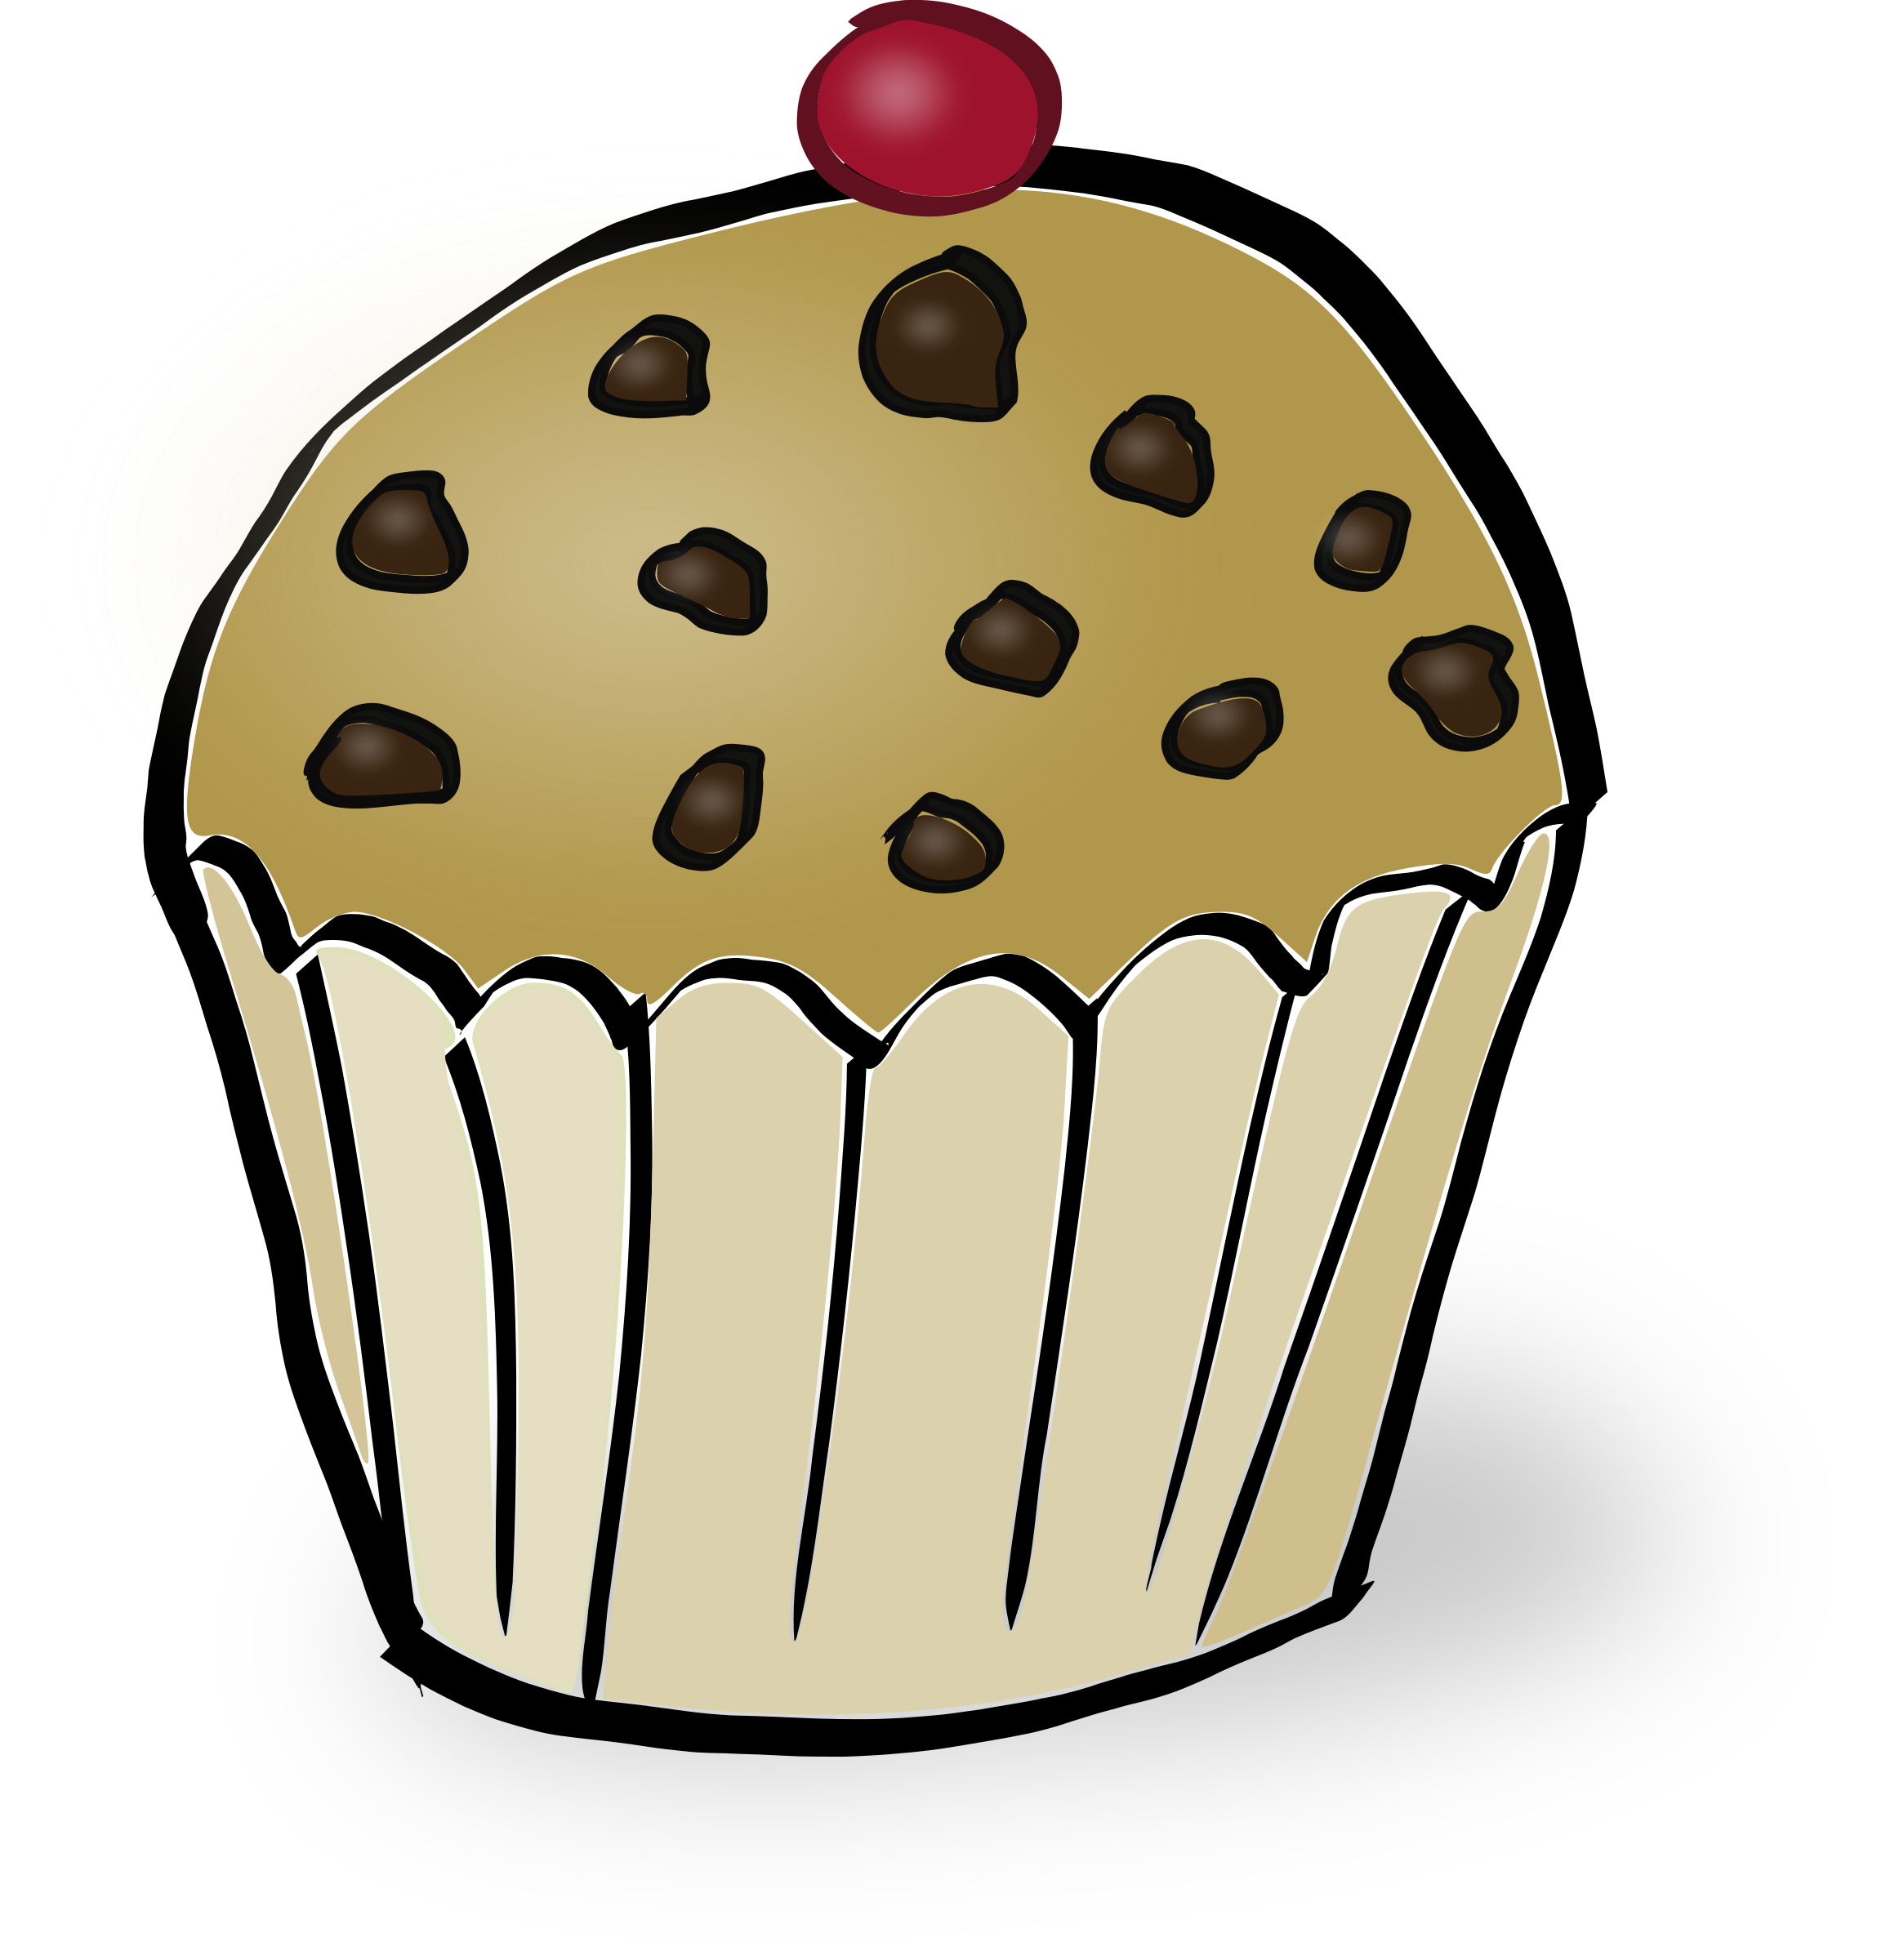 Chips clipart cute. Chocolate muffin big image